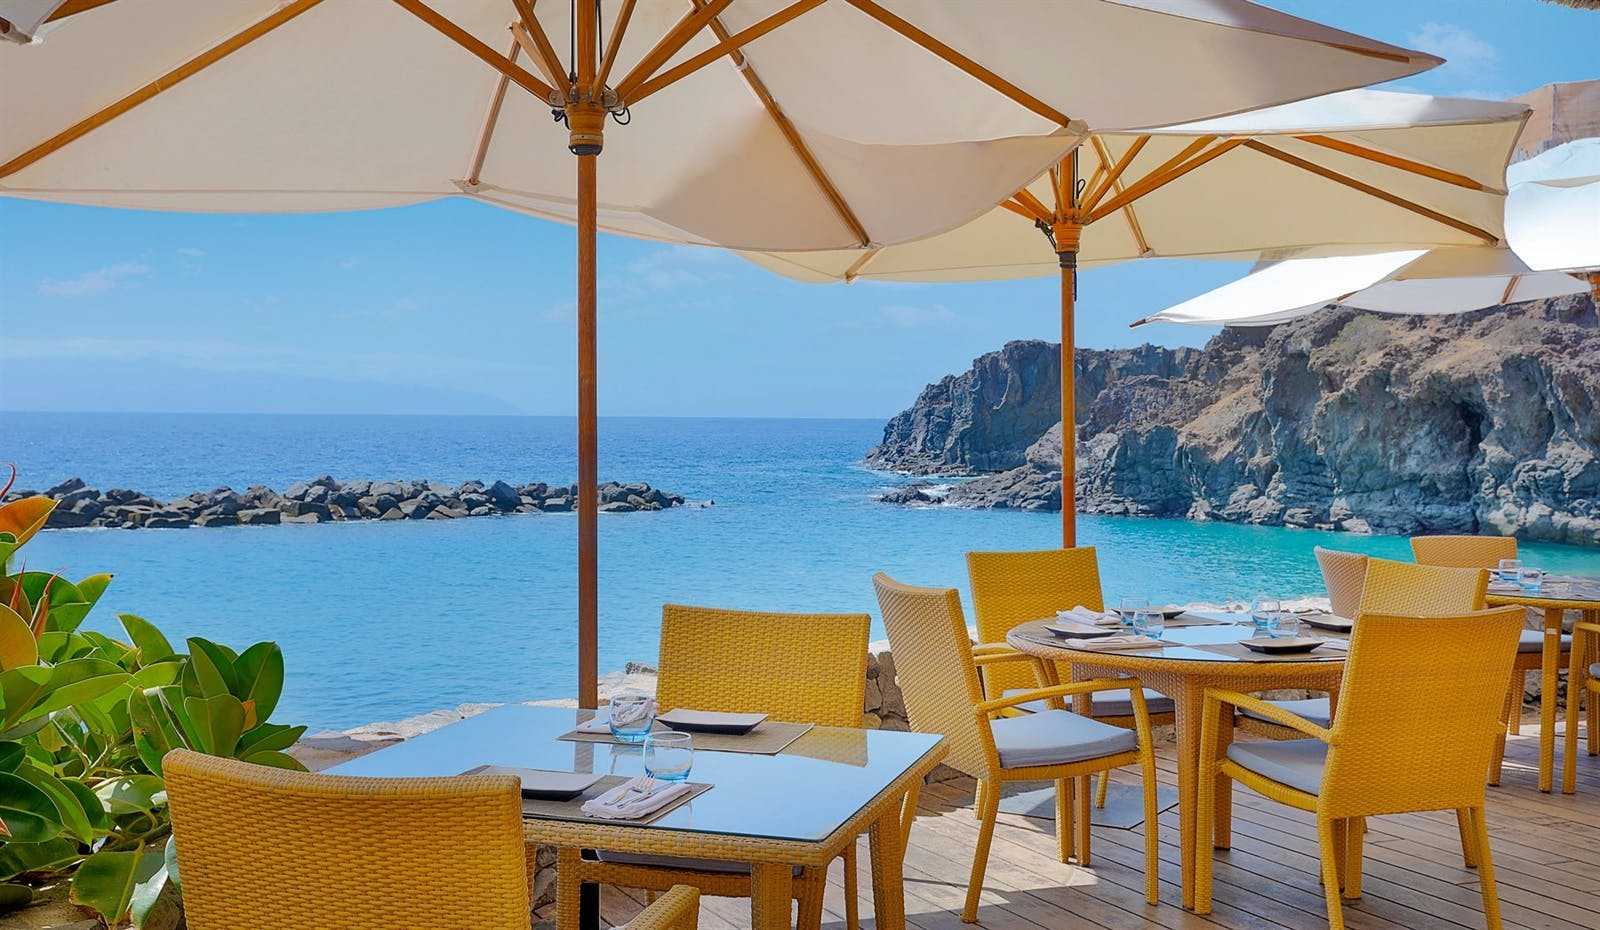 The Beach Club, The Ritz-Carlton, Abama, Tenerife